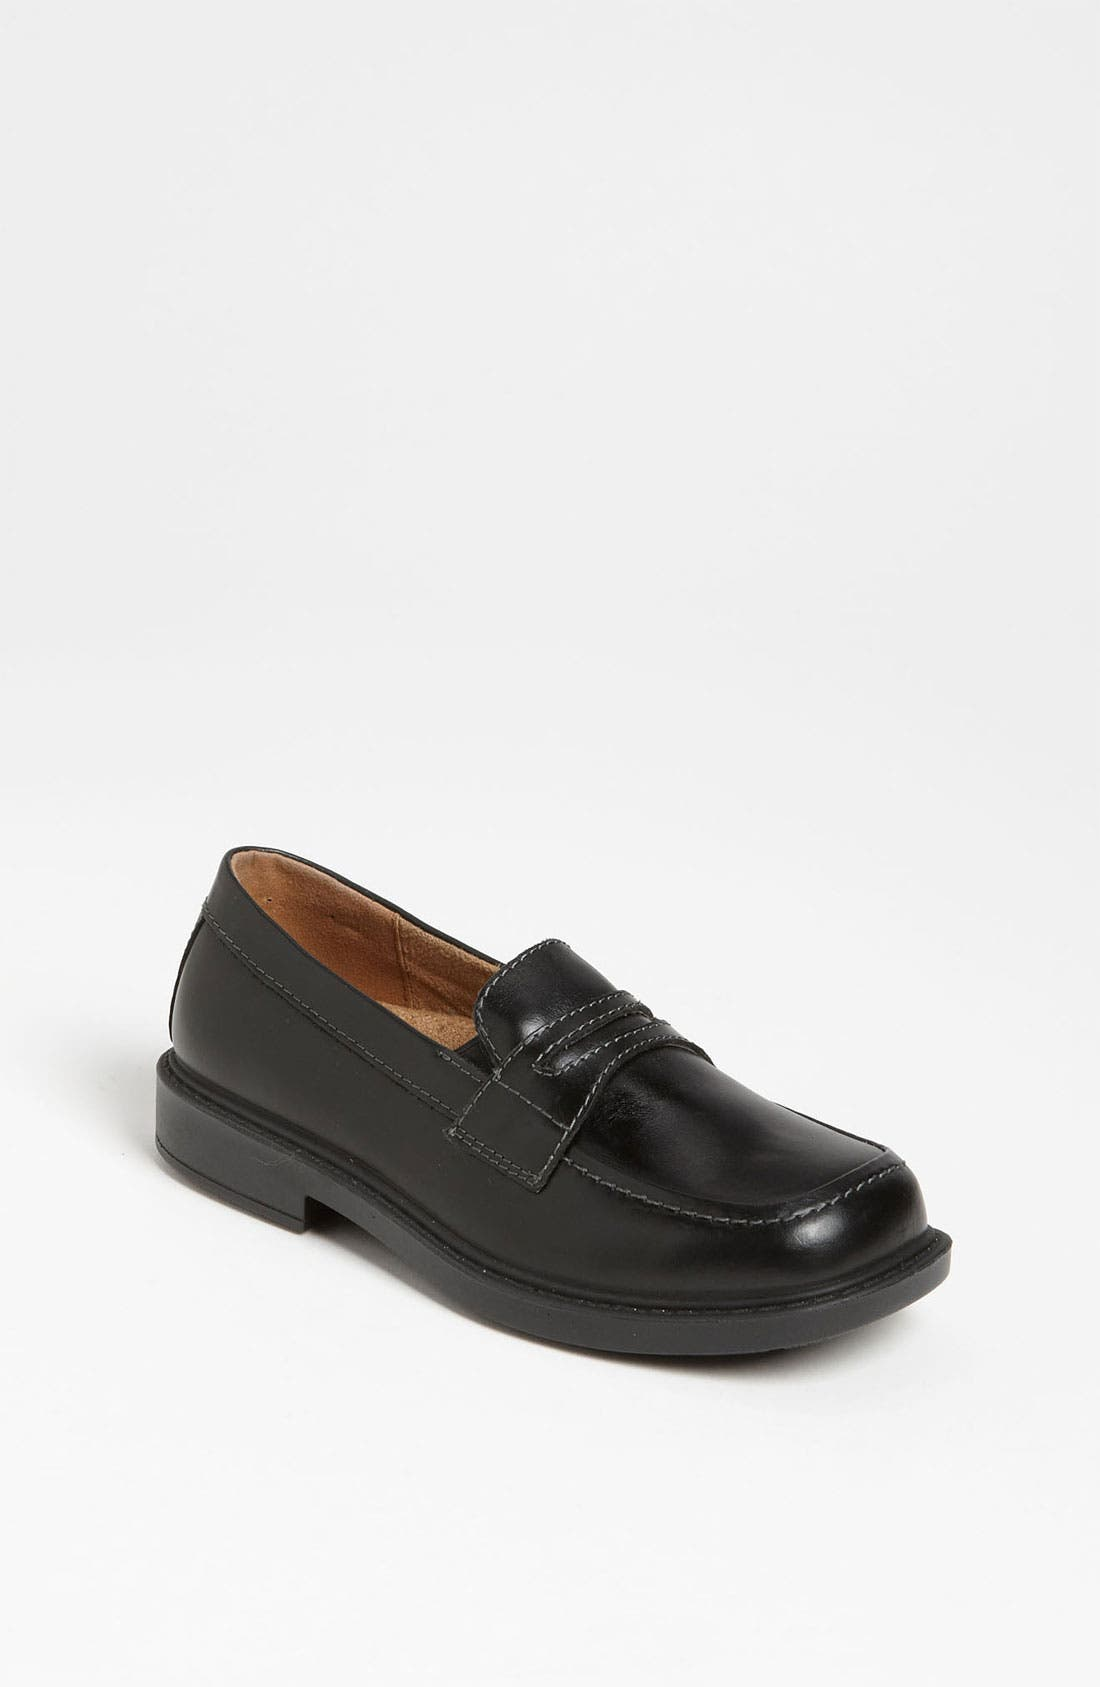 Alternate Image 1 Selected - Hush Puppies® 'Macalaster' Loafer (Toddler, Little Kid & Big Kid)